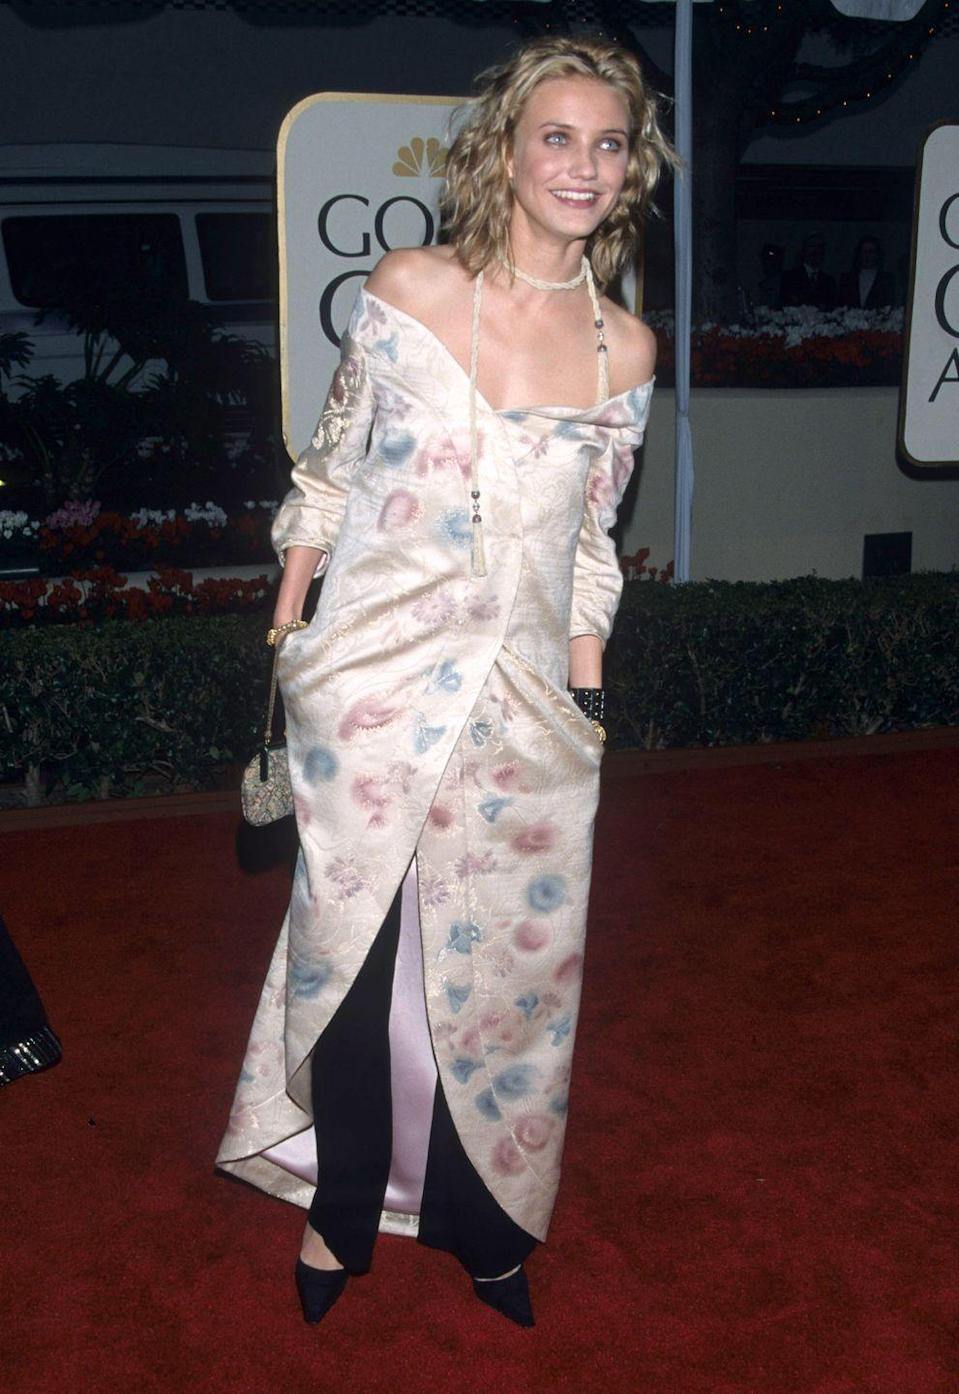 <p>At the Golden Globes, the star wore an off-the-shoulder printed duster over black pants and accessorized with a tasseled choker. I mean, can you even imagine her wearing something like this today? </p>